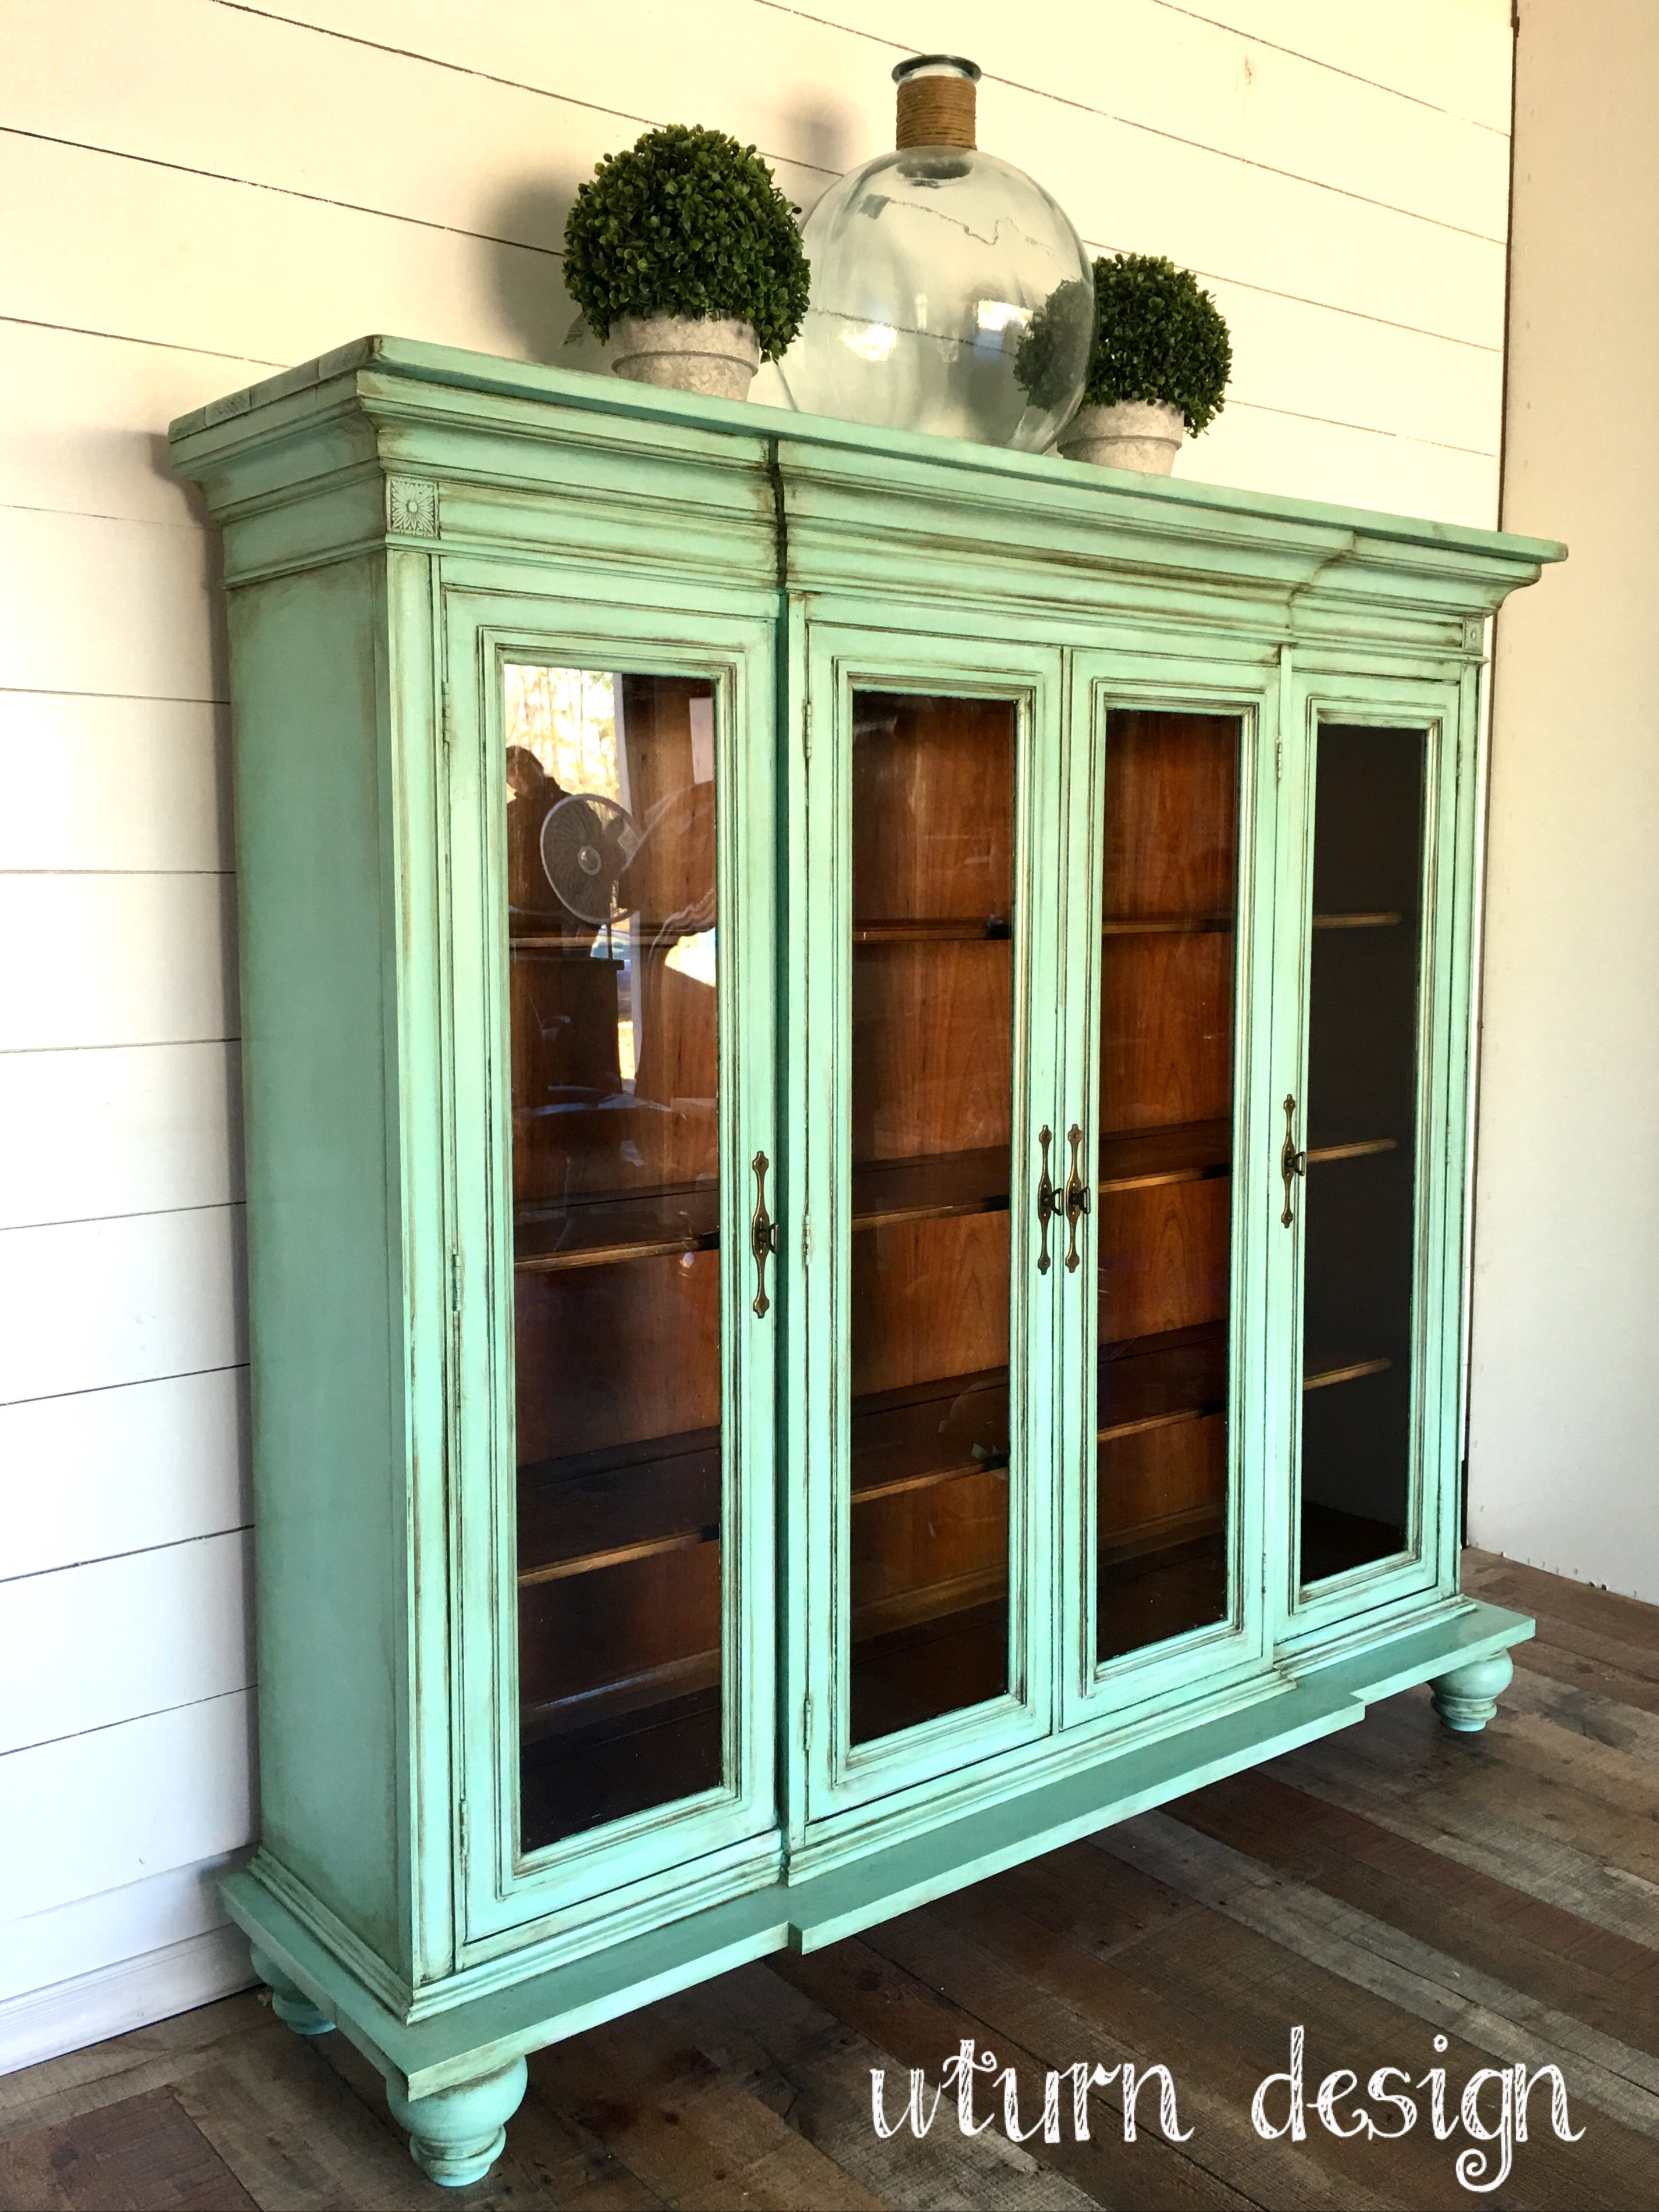 my cabinet pinterest china pin refinished pieces antique